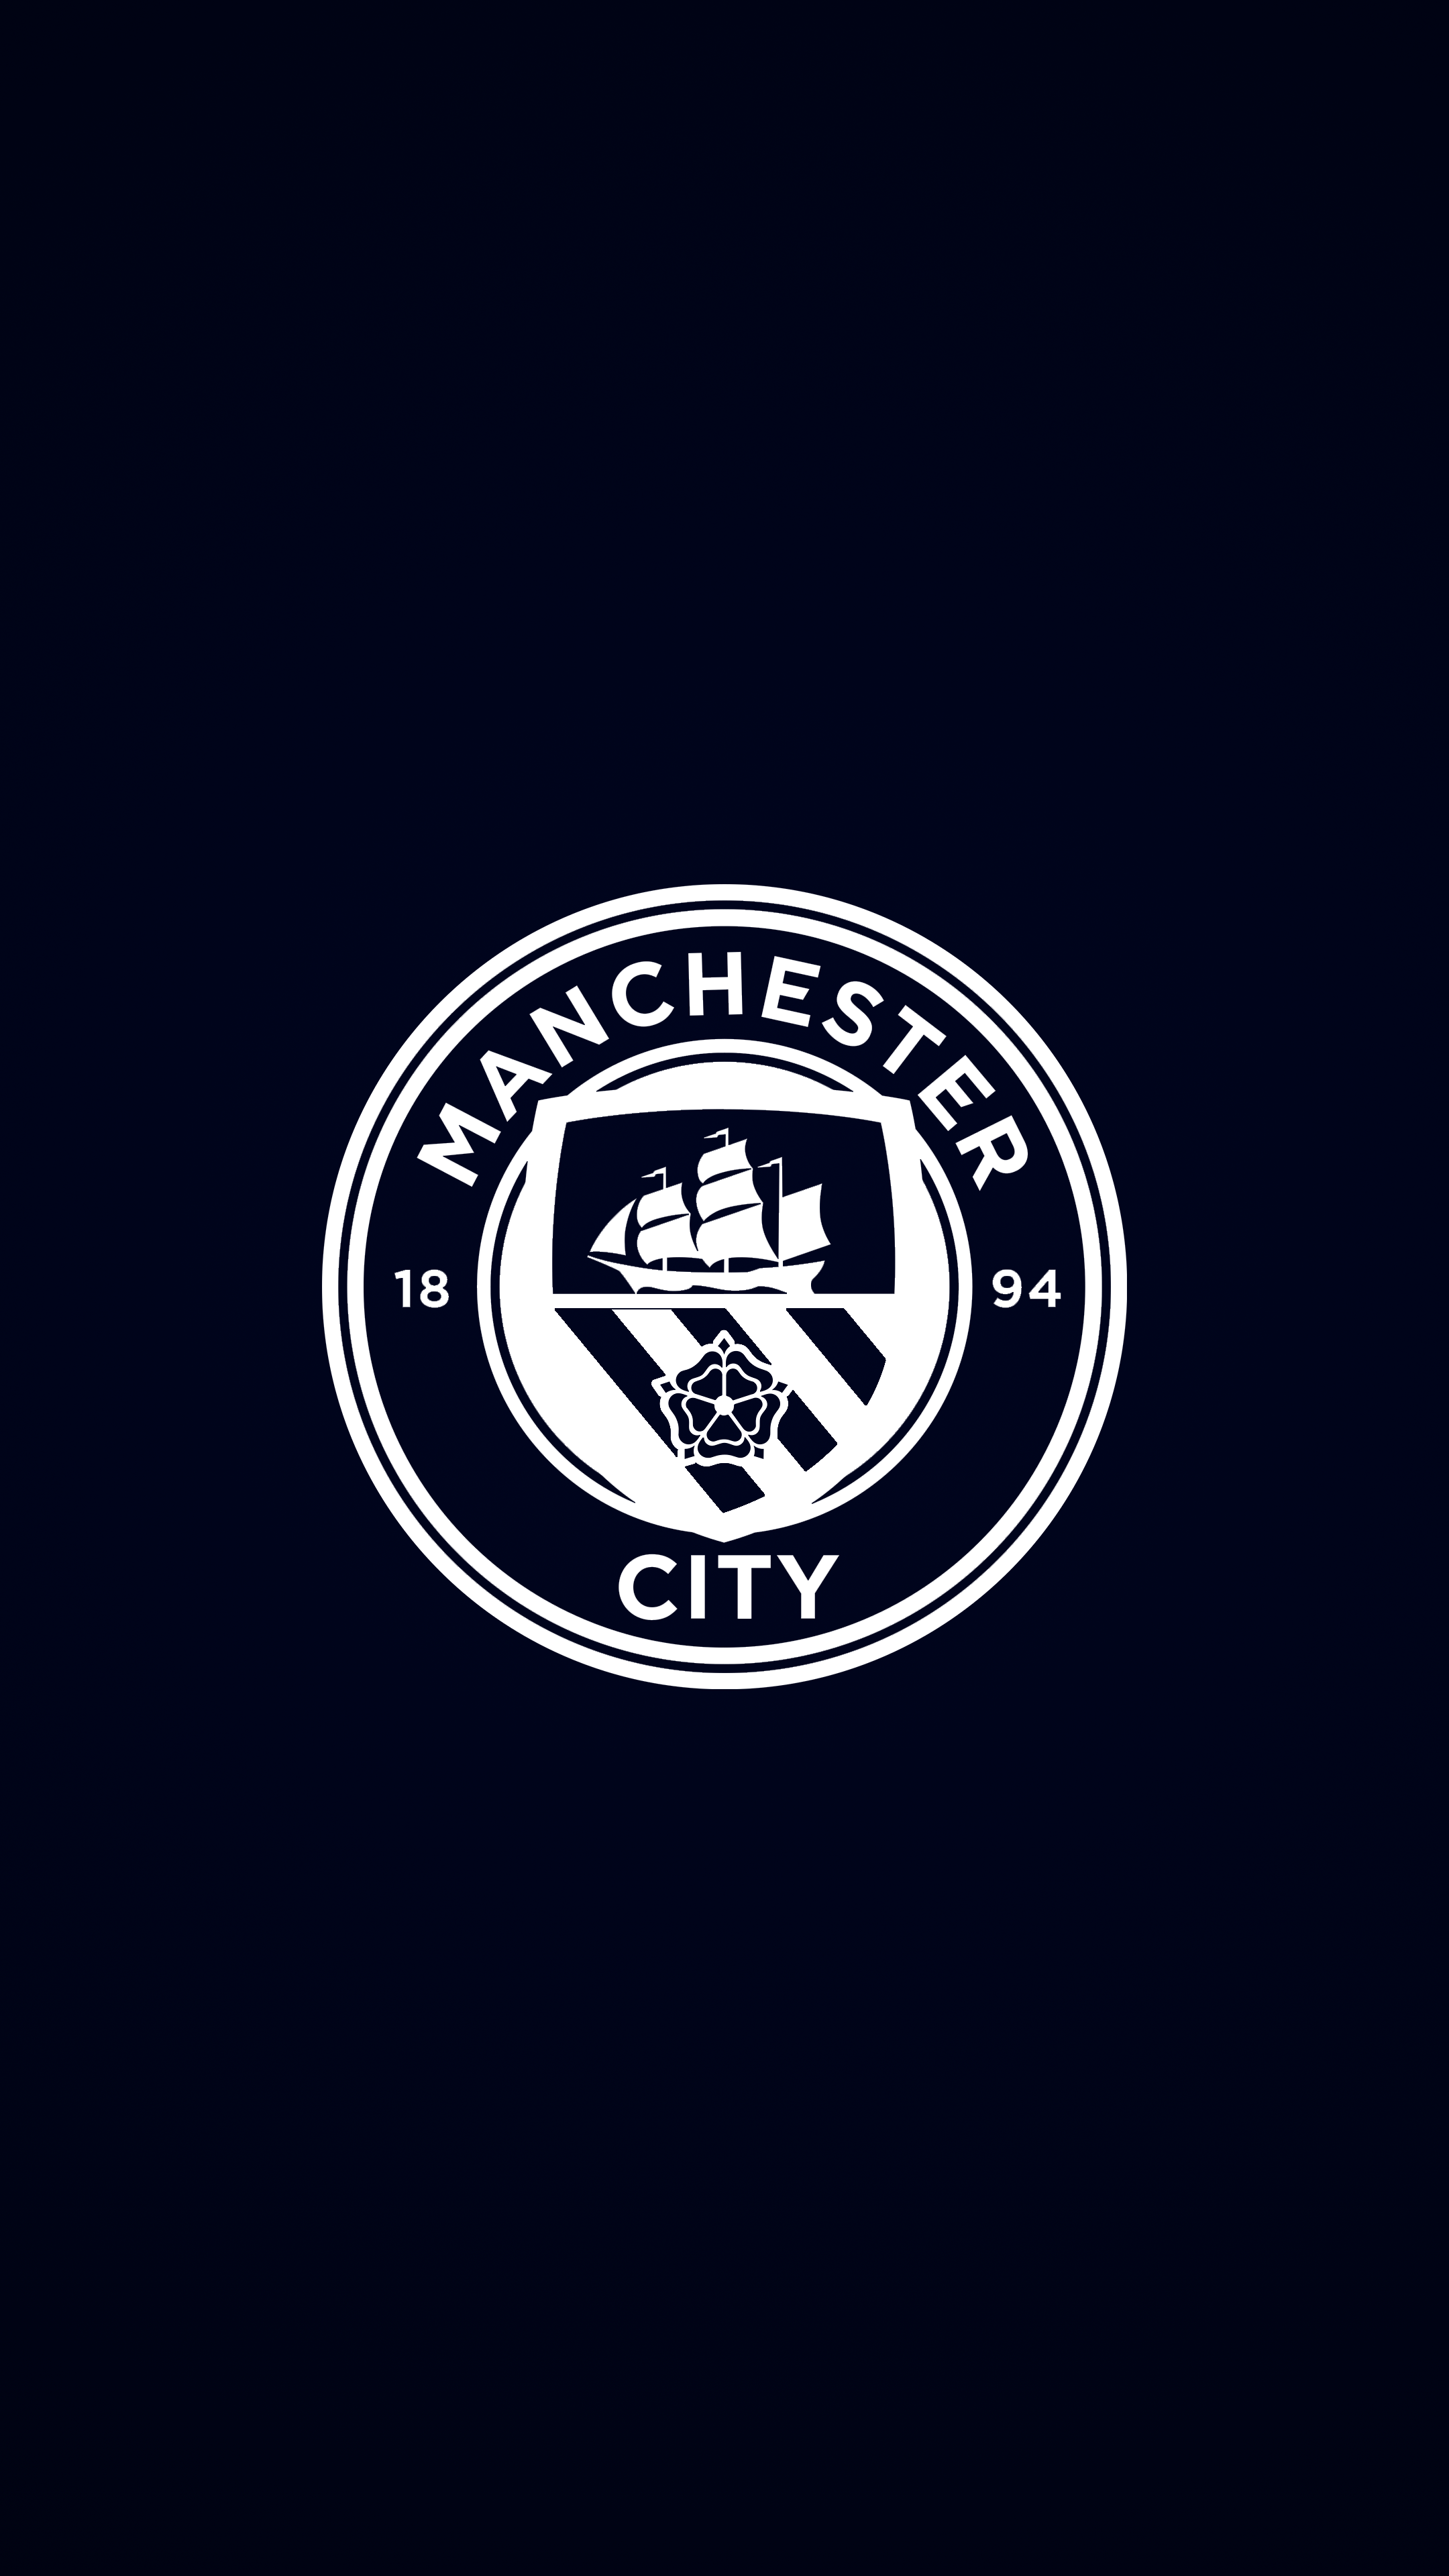 Manchester City 4k Magnificent Wallpaper Pemain Sepak Bola Sepak Bola Olahraga